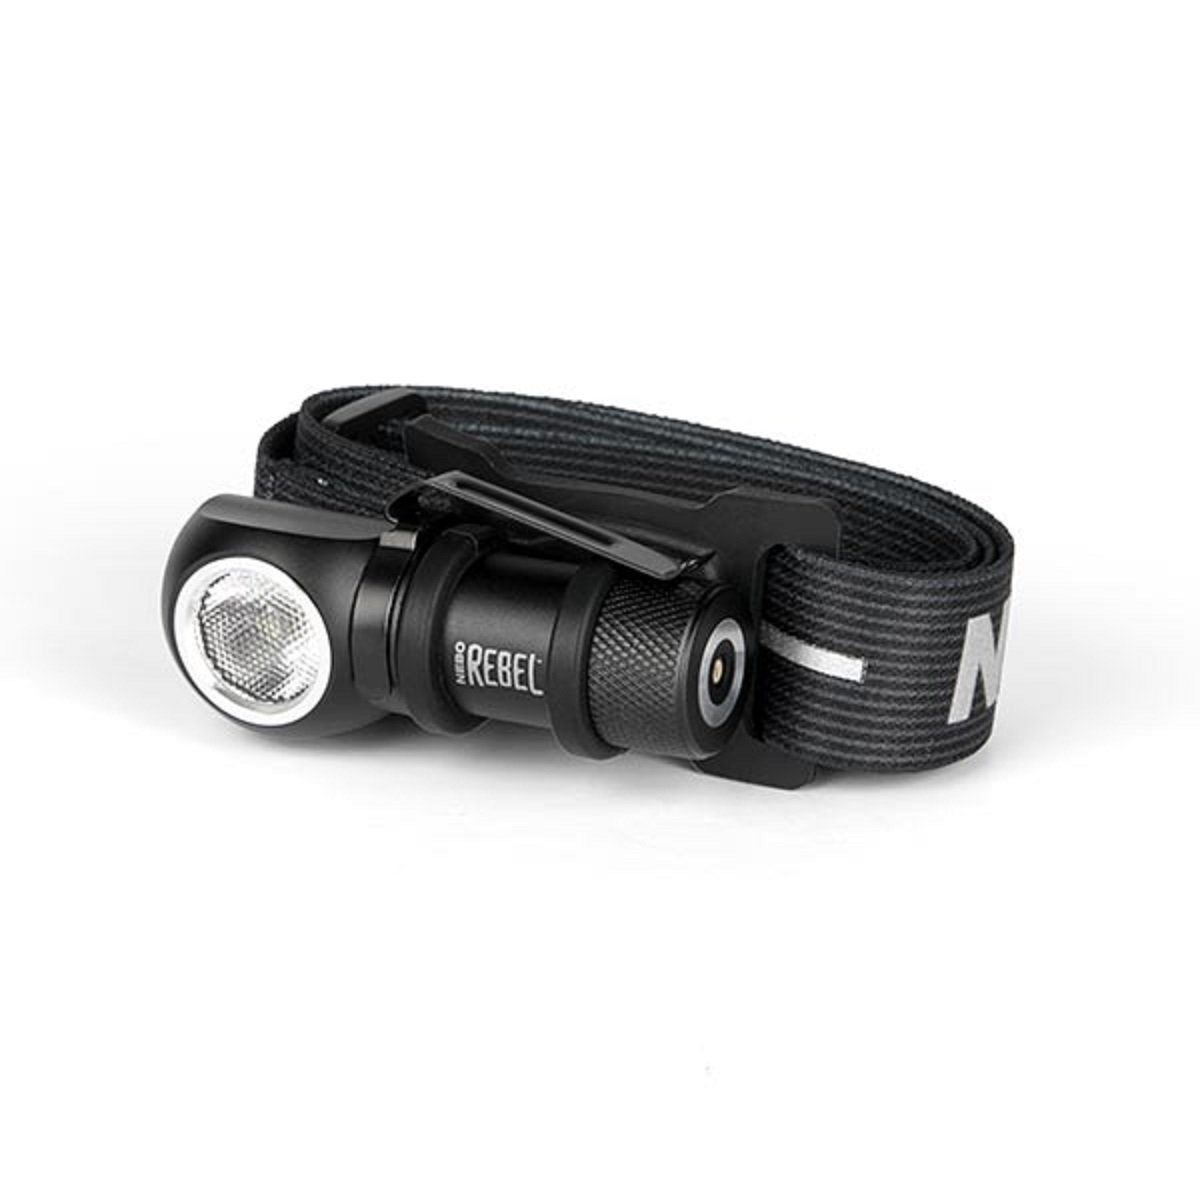 NEBO REBEL Tactical Head Lamp: Small enough to fit in the palm of your hand, this powerful Rechargeable Head Light rebels against its size with its impressive 600 lumen output and 4 Working Modes  by NEBO